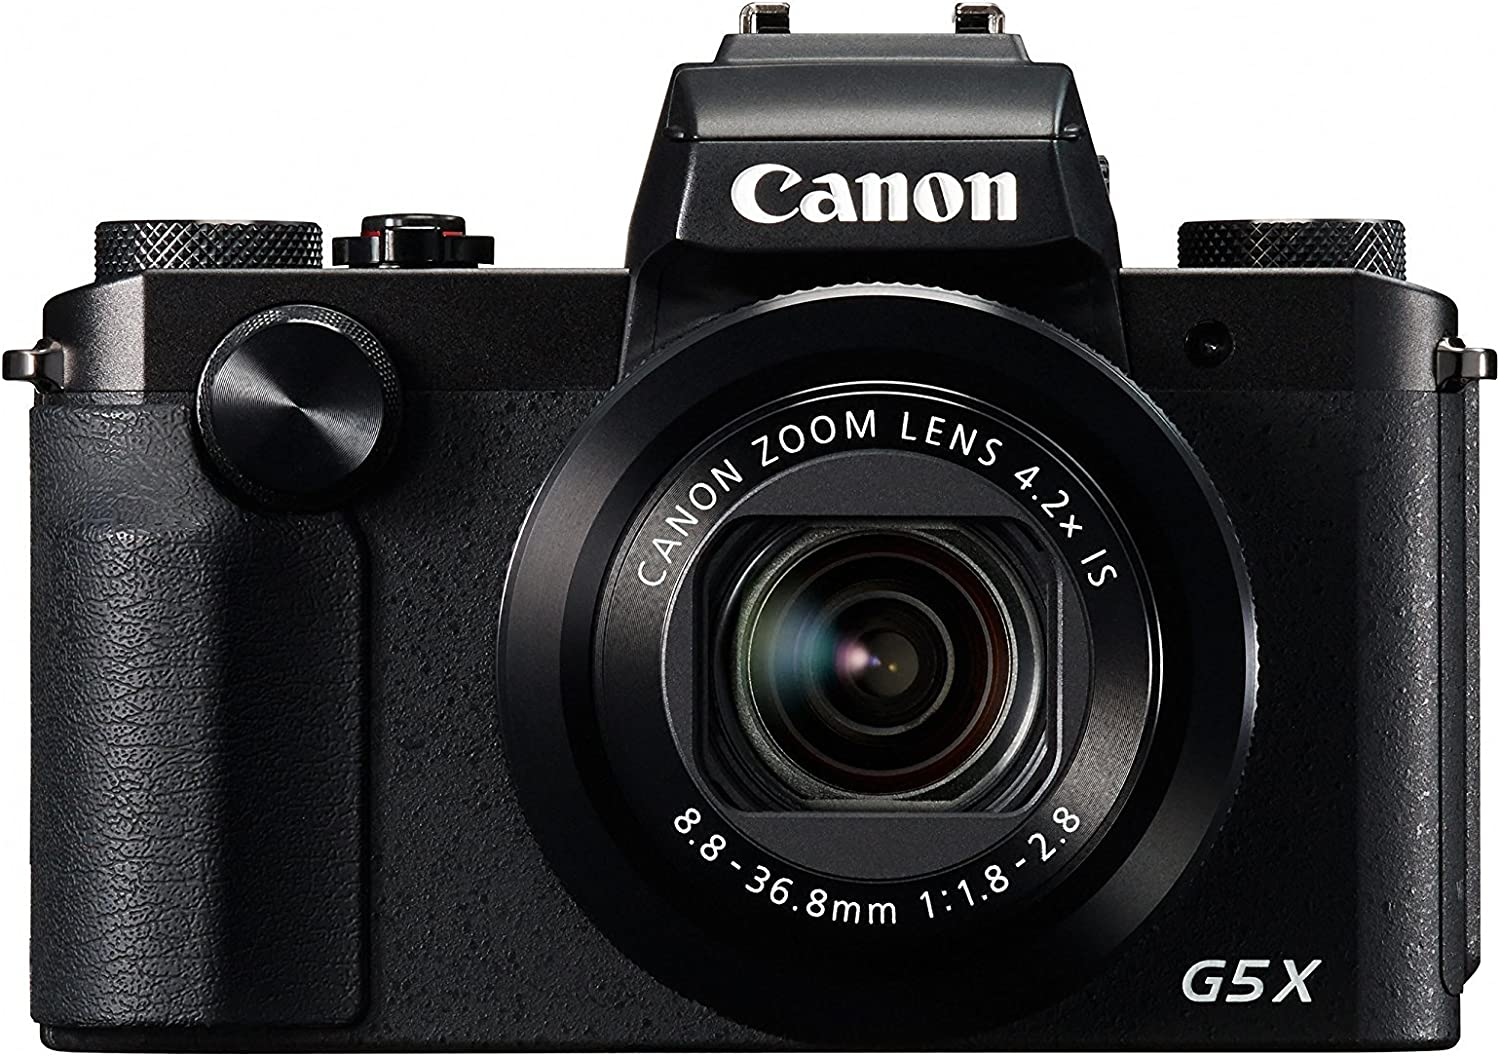 Canon PowerShot G5 X Digital Camera w/1 Inch Sensor and built-in viewfinder - Wi-Fi & NFC Enabled (Black) (Renewed)